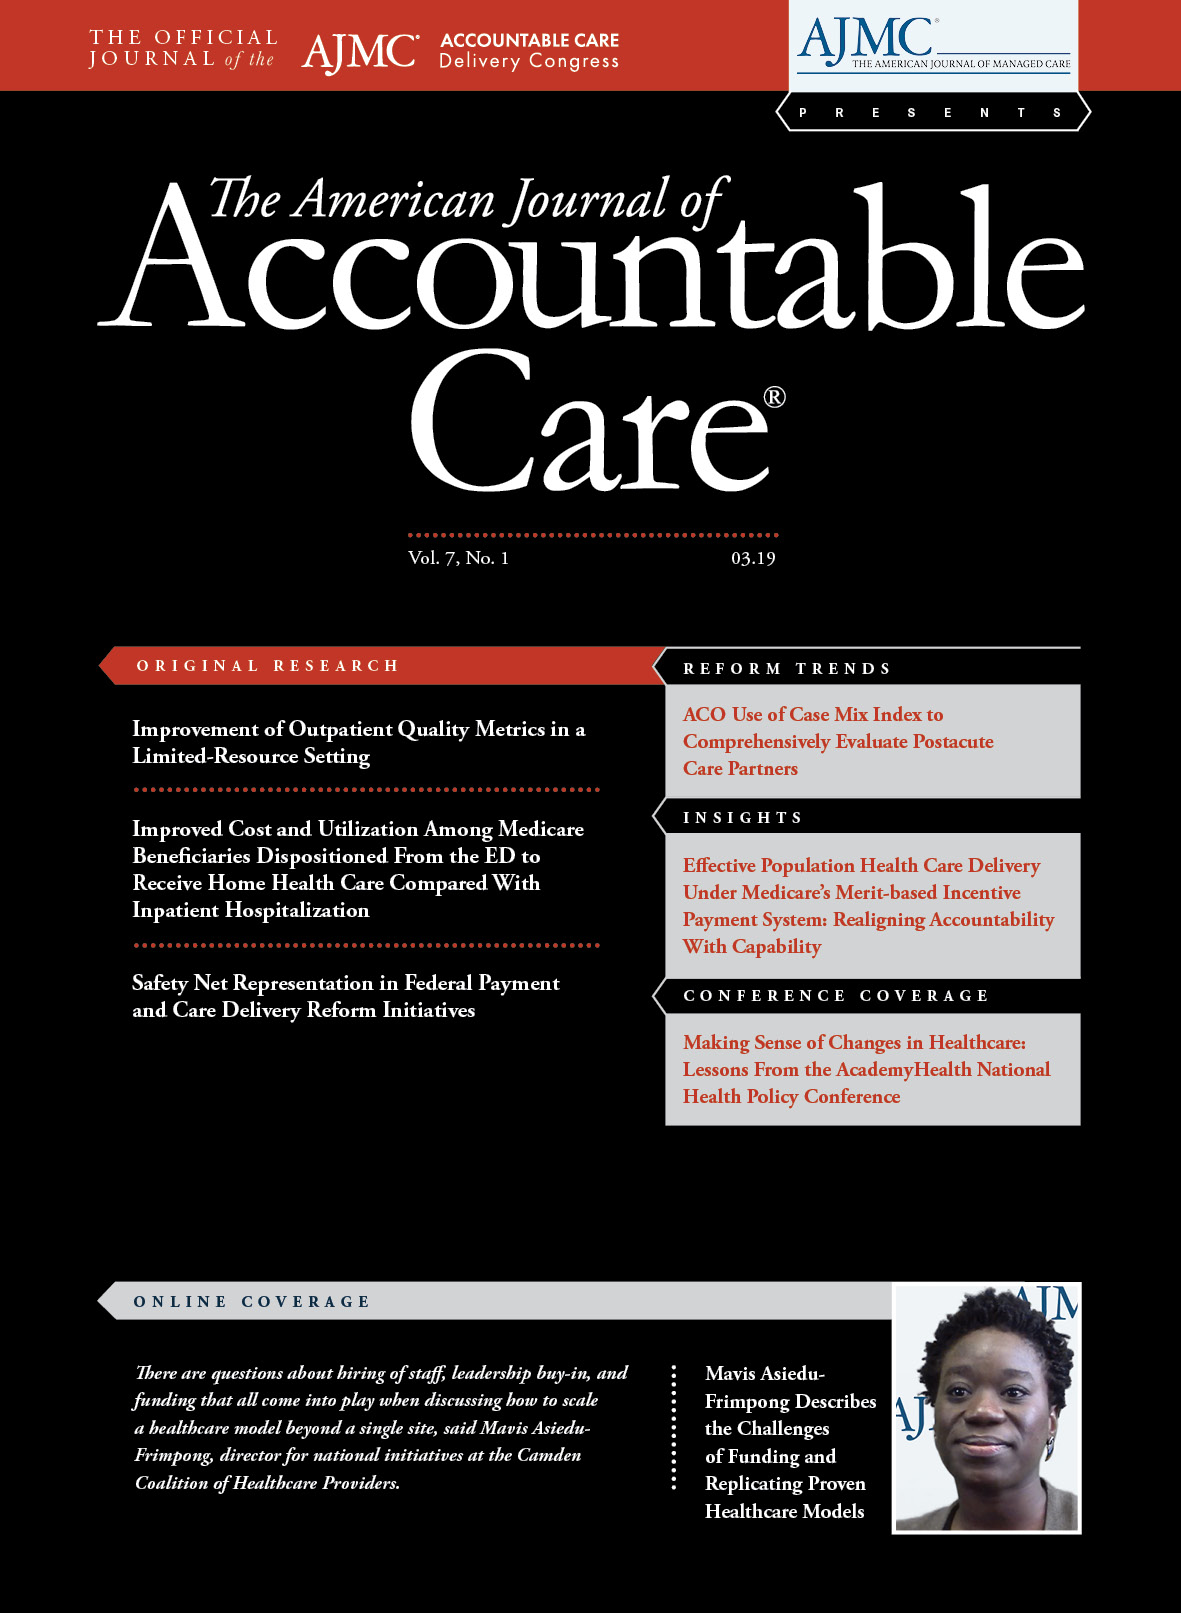 The American Journal of Accountable Care